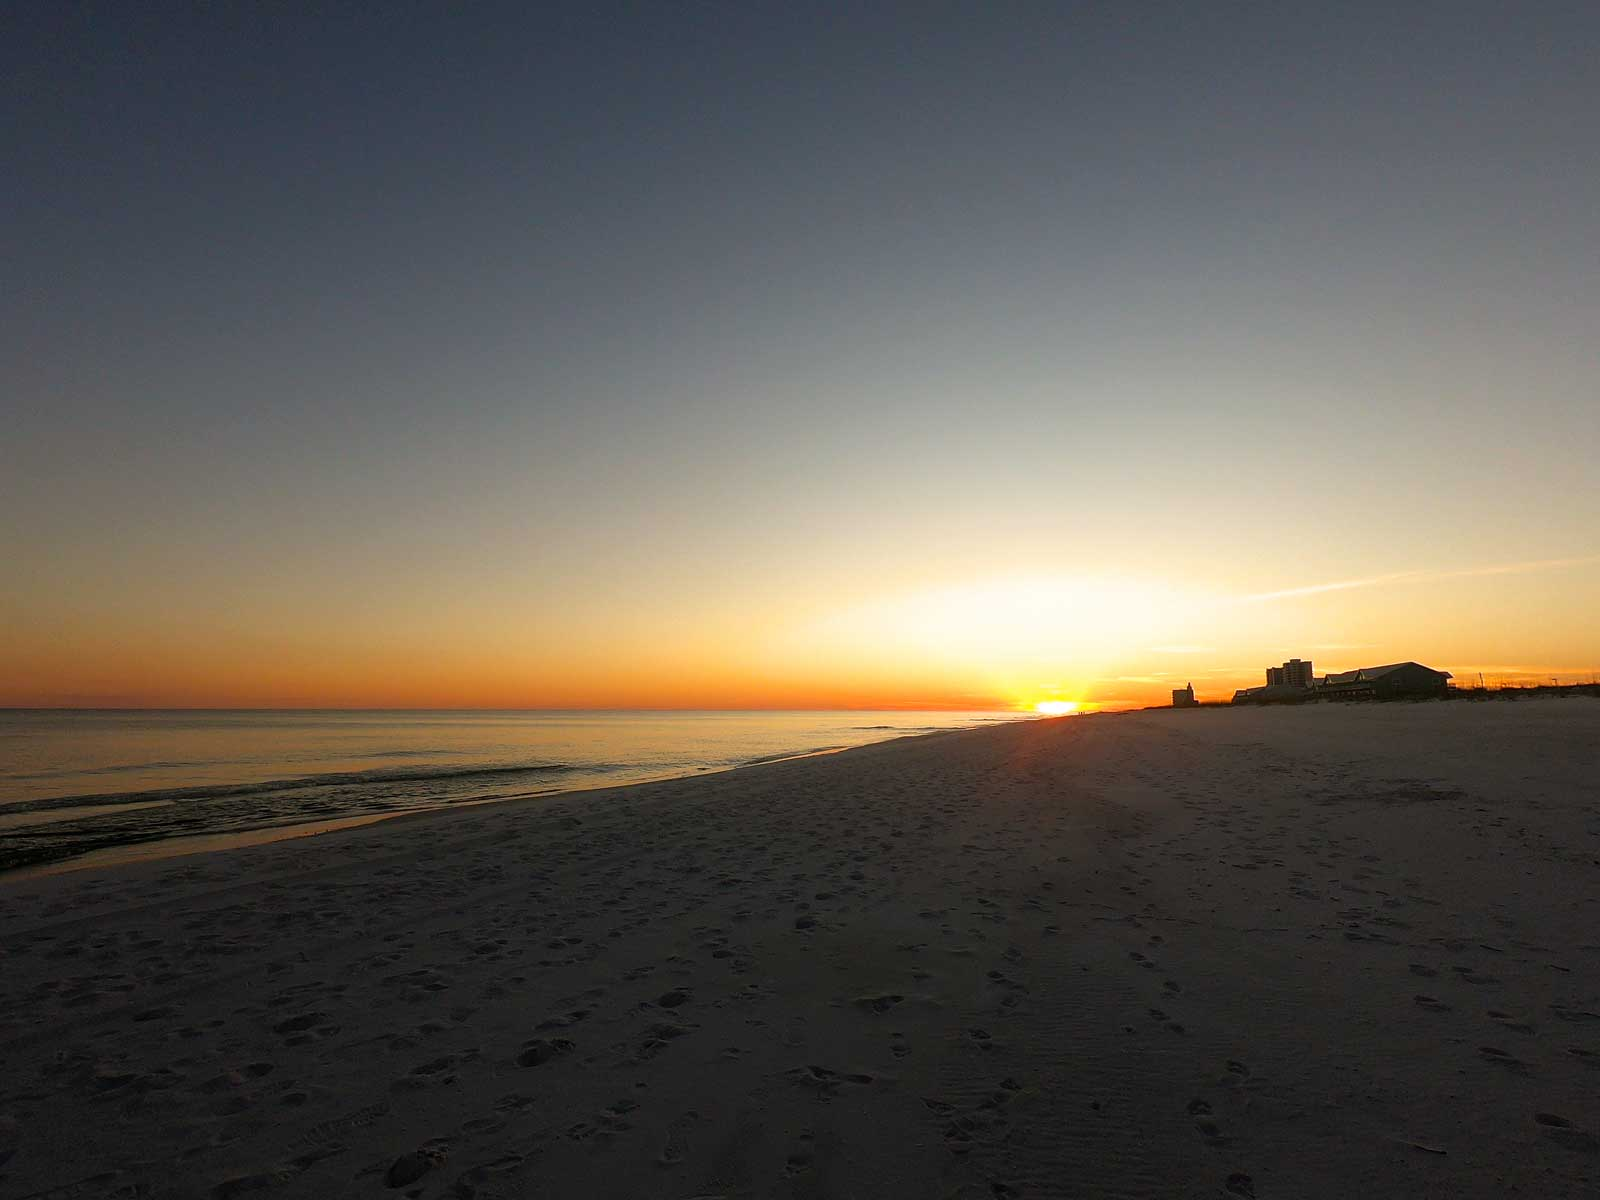 Setset view on Pensacola Beach, Florida